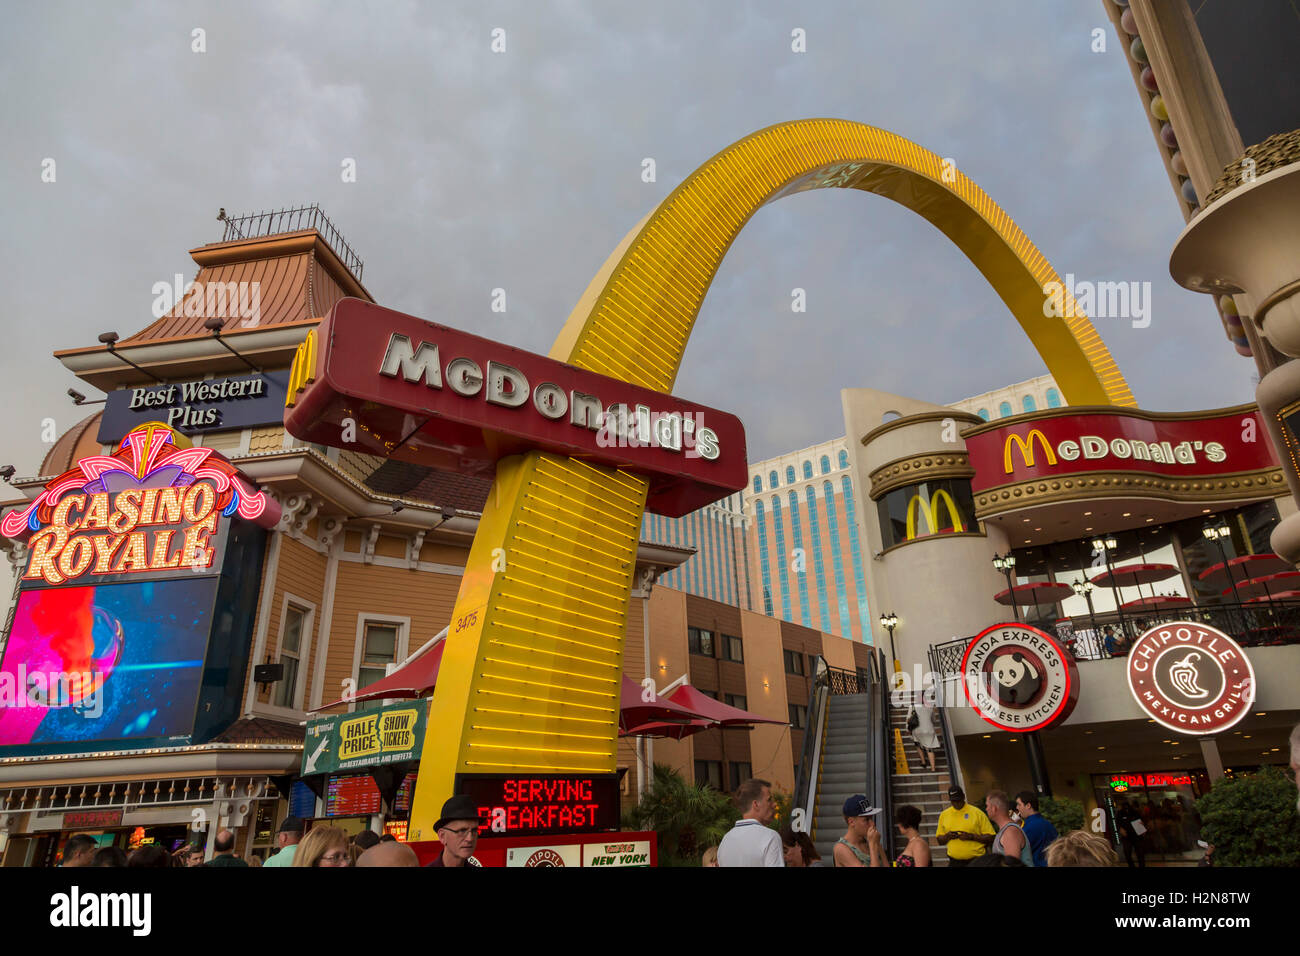 Las Vegas, Nevada - A McDonald's restaurant on the Strip. - Stock Image